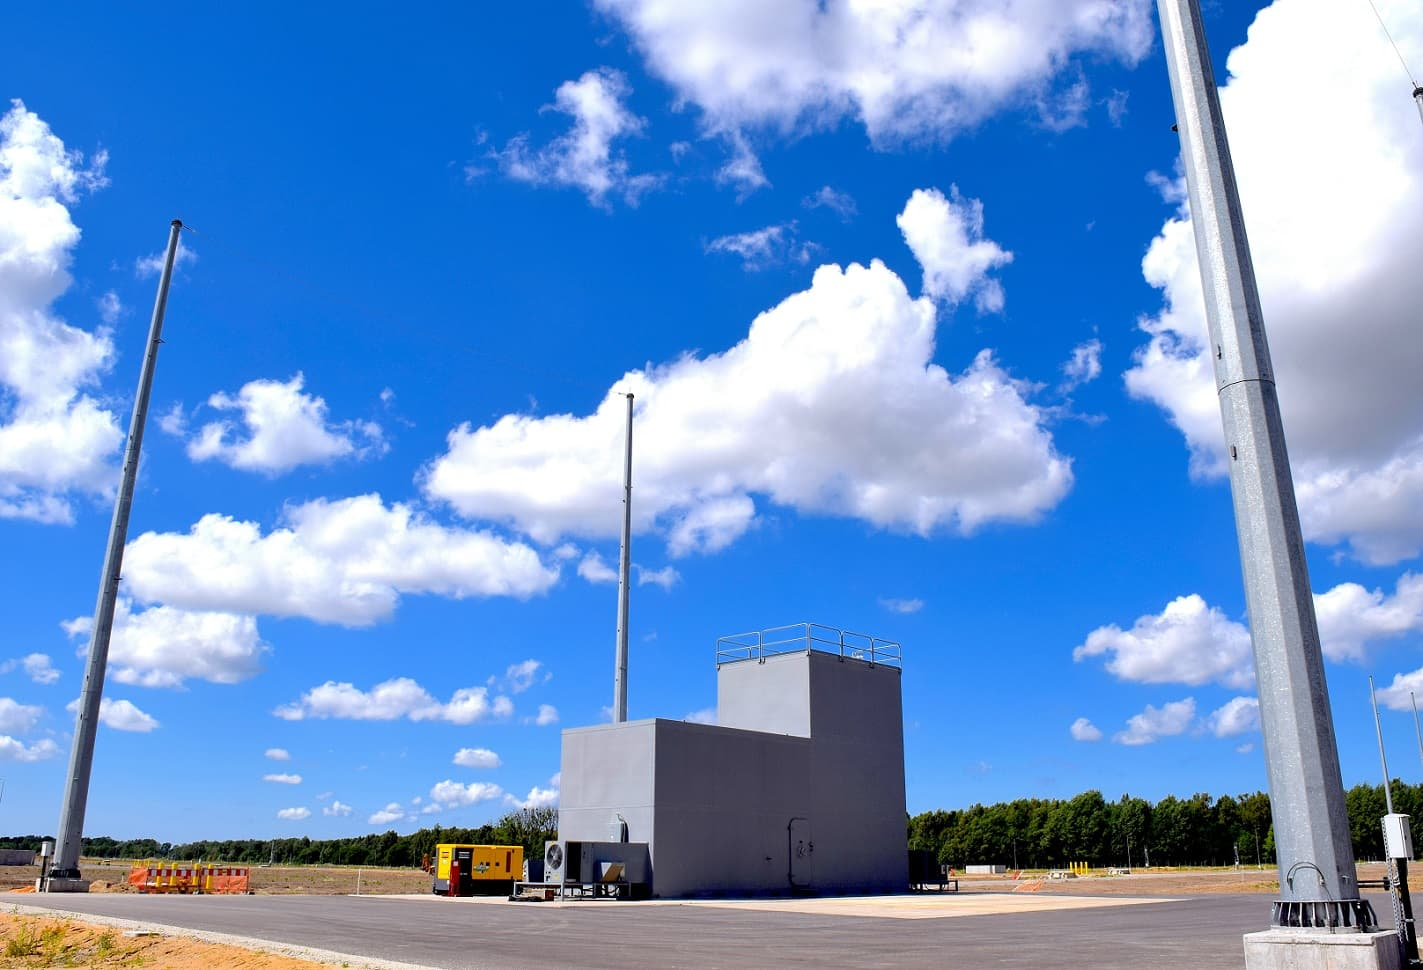 One of three ballistic missile defense launcher sites located on the base. Photo by Lt. Amy Forsythe